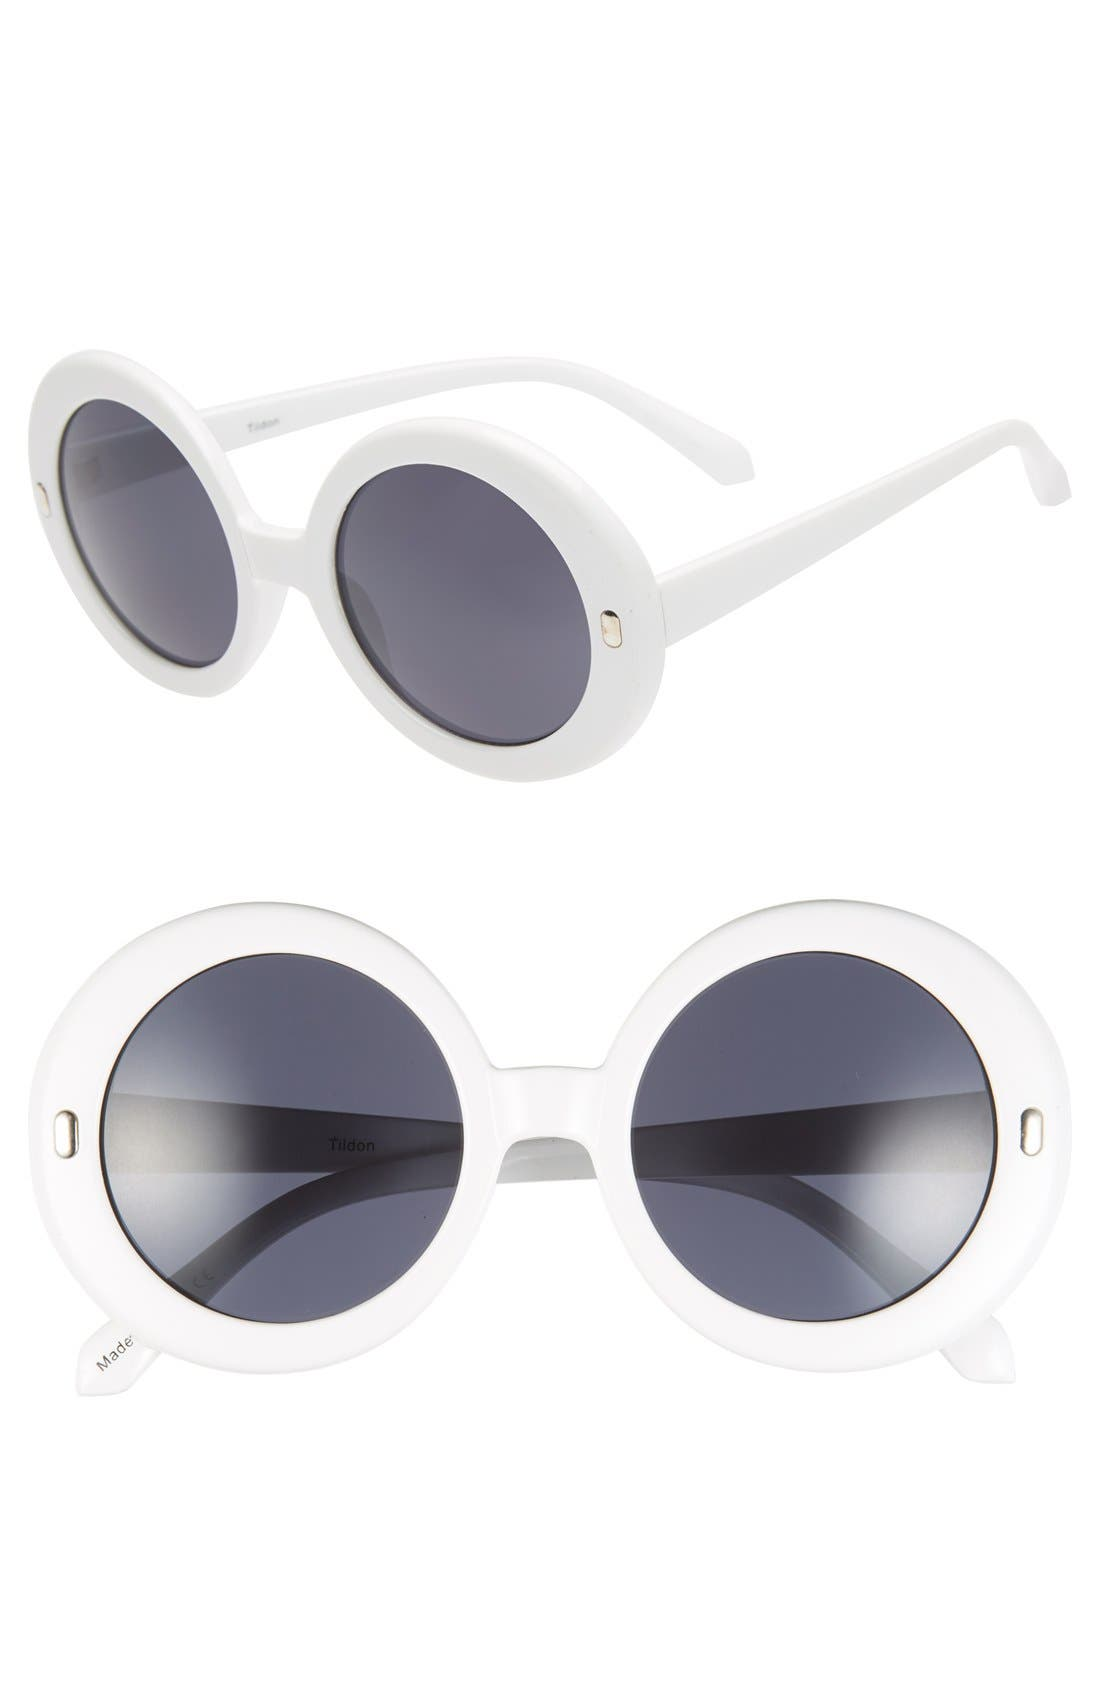 Alternate Image 1 Selected - Tildon 60mm Round Sunglasses